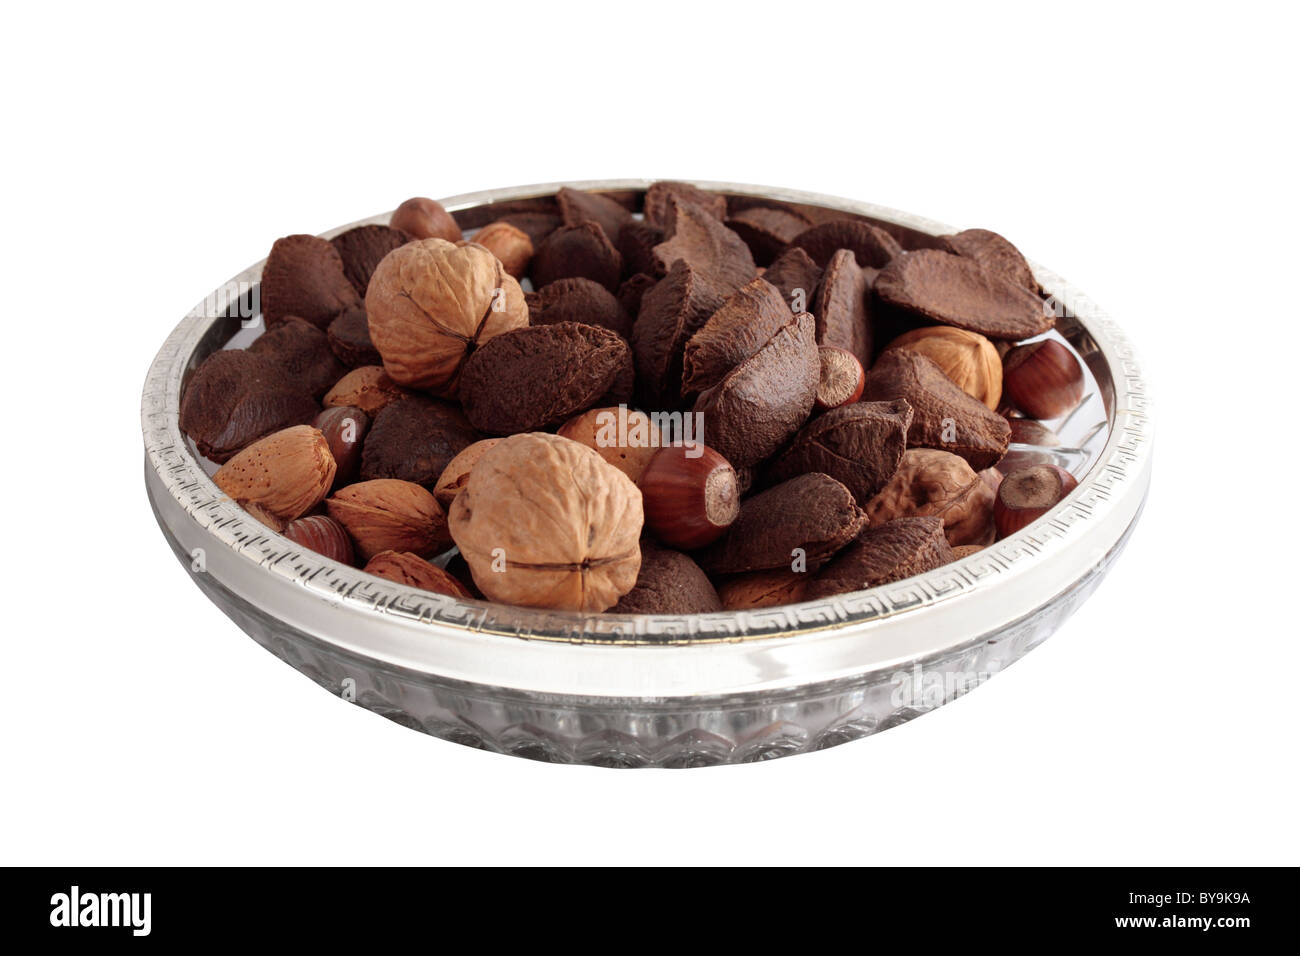 A Bowl of mixed nuts in shells on white background - Stock Image